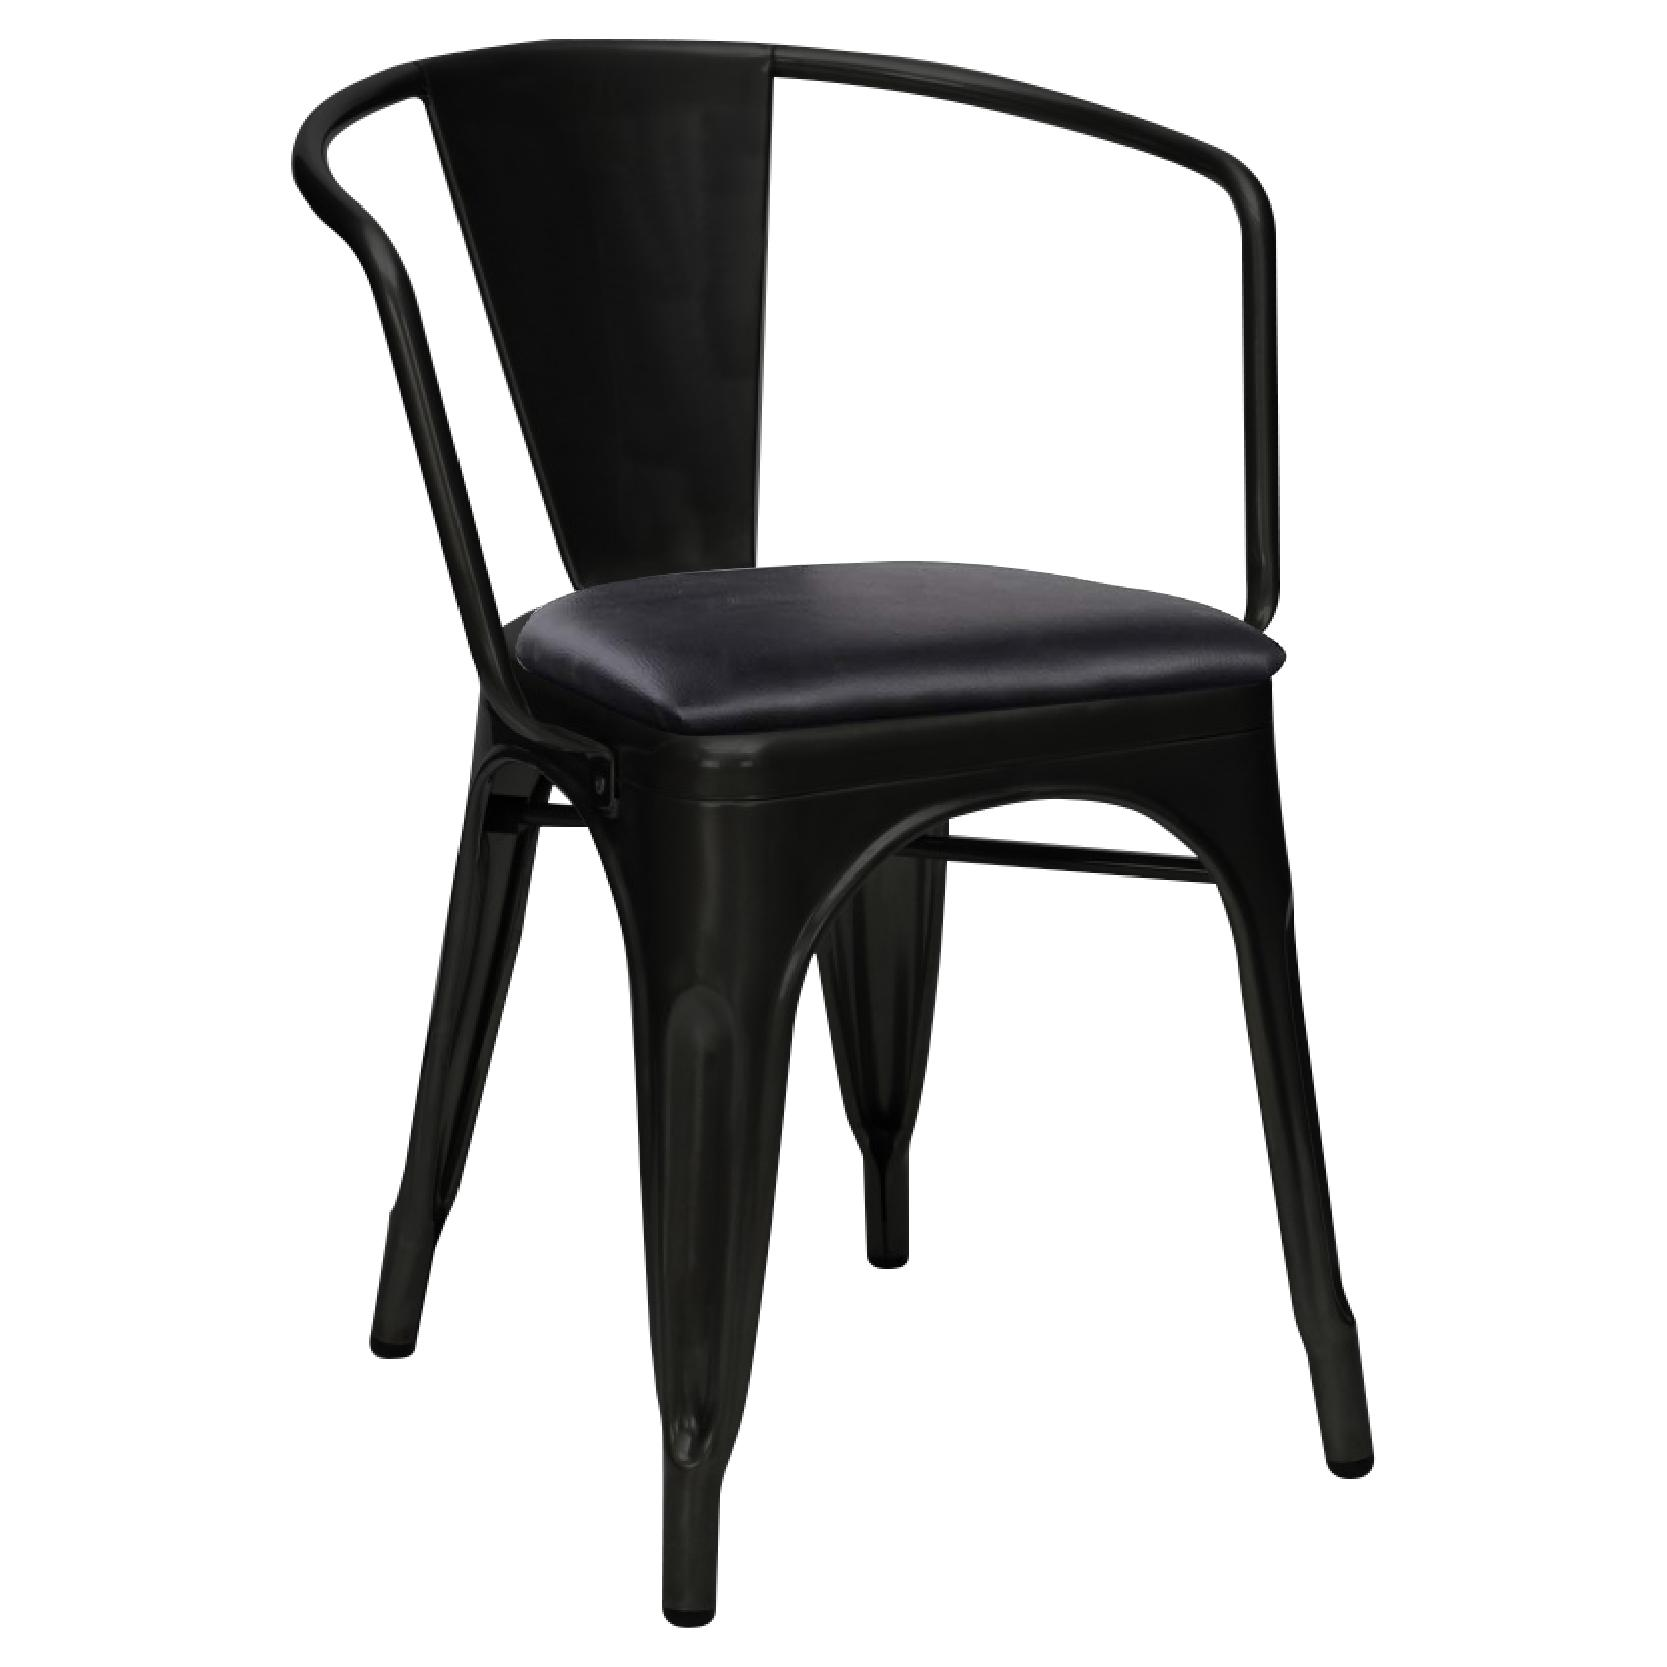 JIJI Tulox Chair 45cm With Cushion (Free Installation) - Designer chairs / Dining Chair / Metal Frame chair / Chrome Chair / 12 Month Warranty (SG)